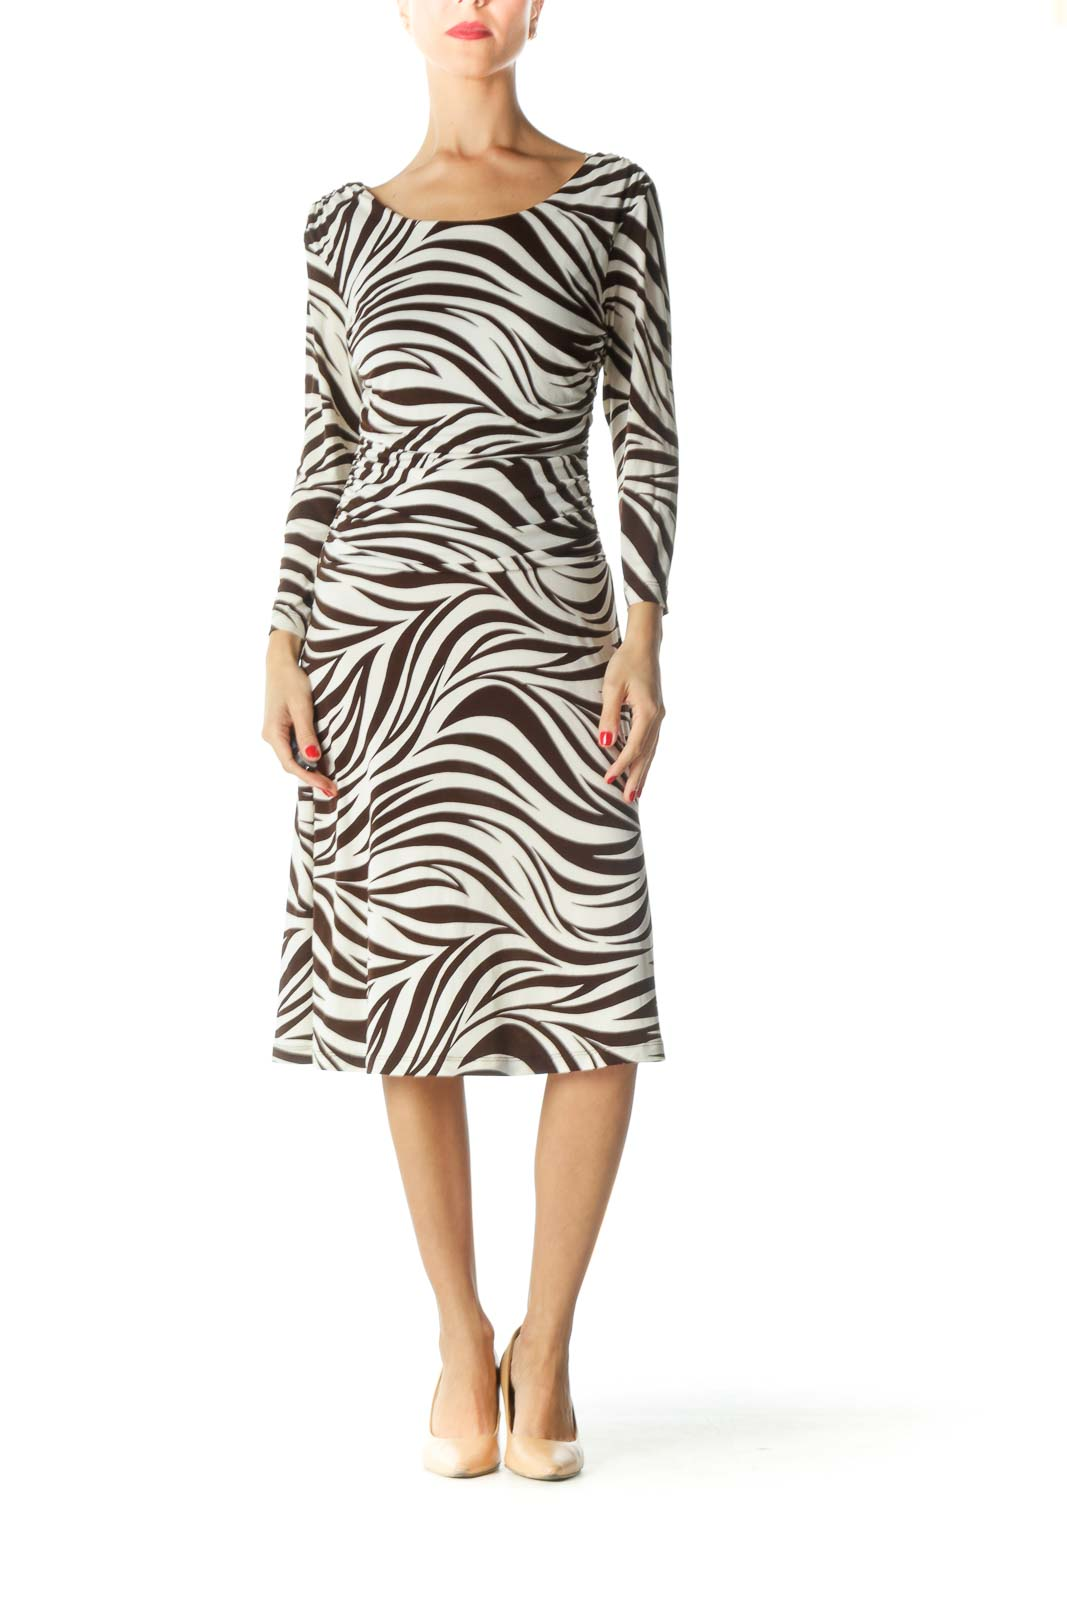 Brown Cream Boat Neck Zebra Print Dress